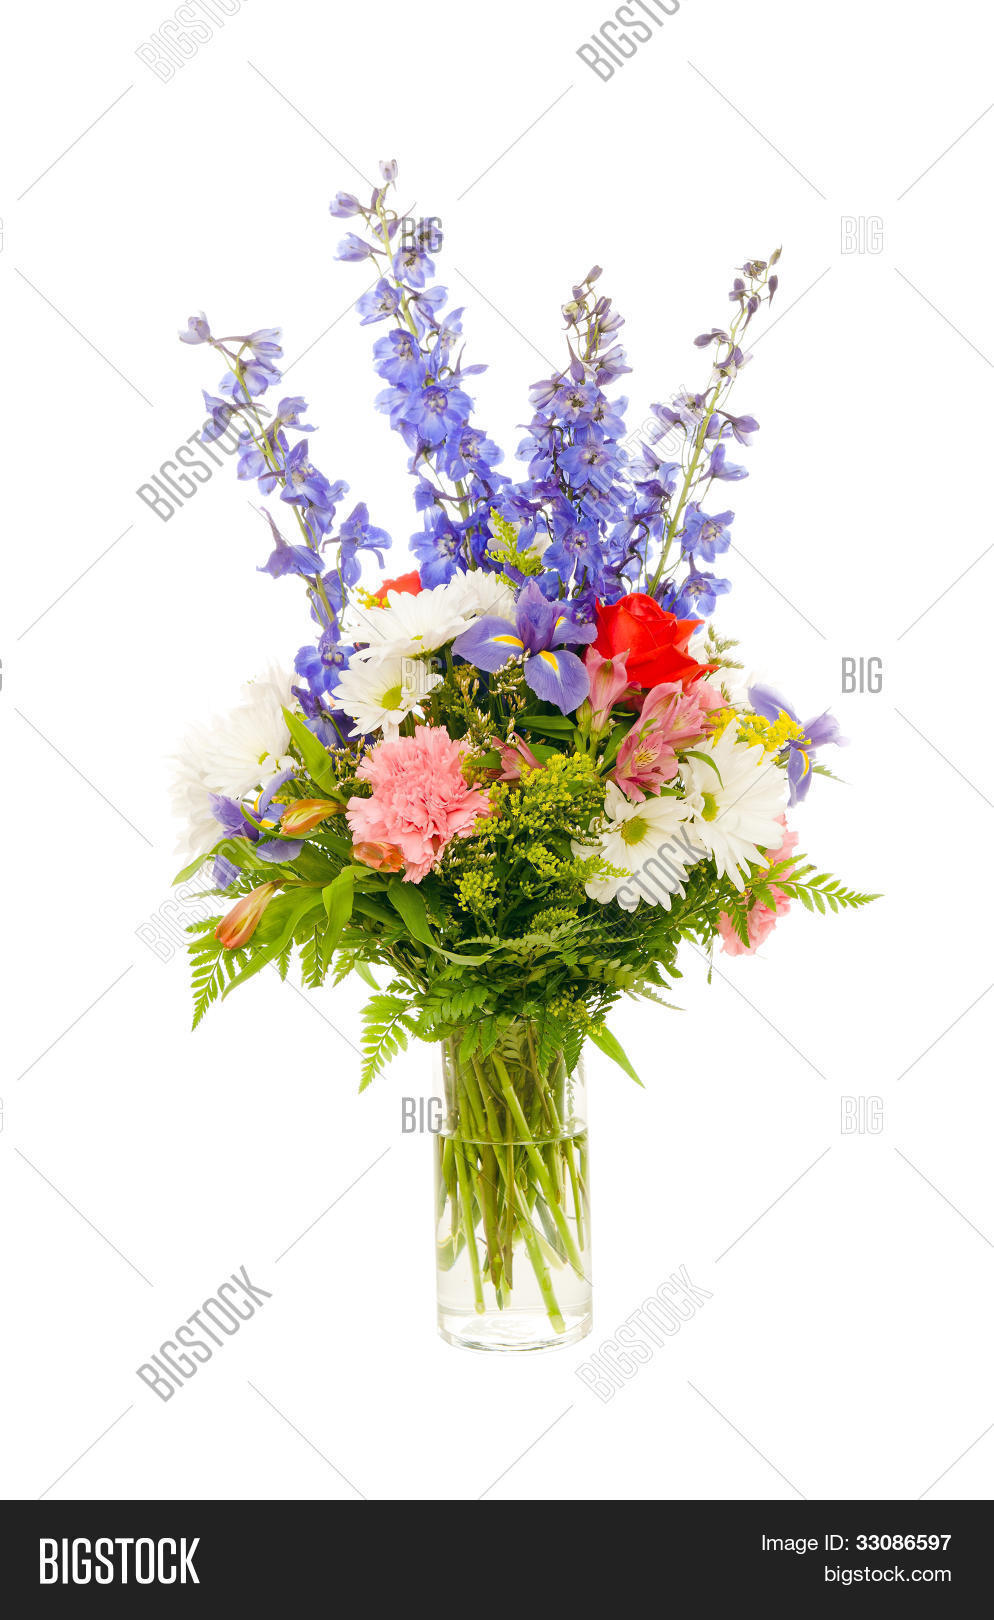 Colorful Fresh Flower Image Photo Free Trial Bigstock